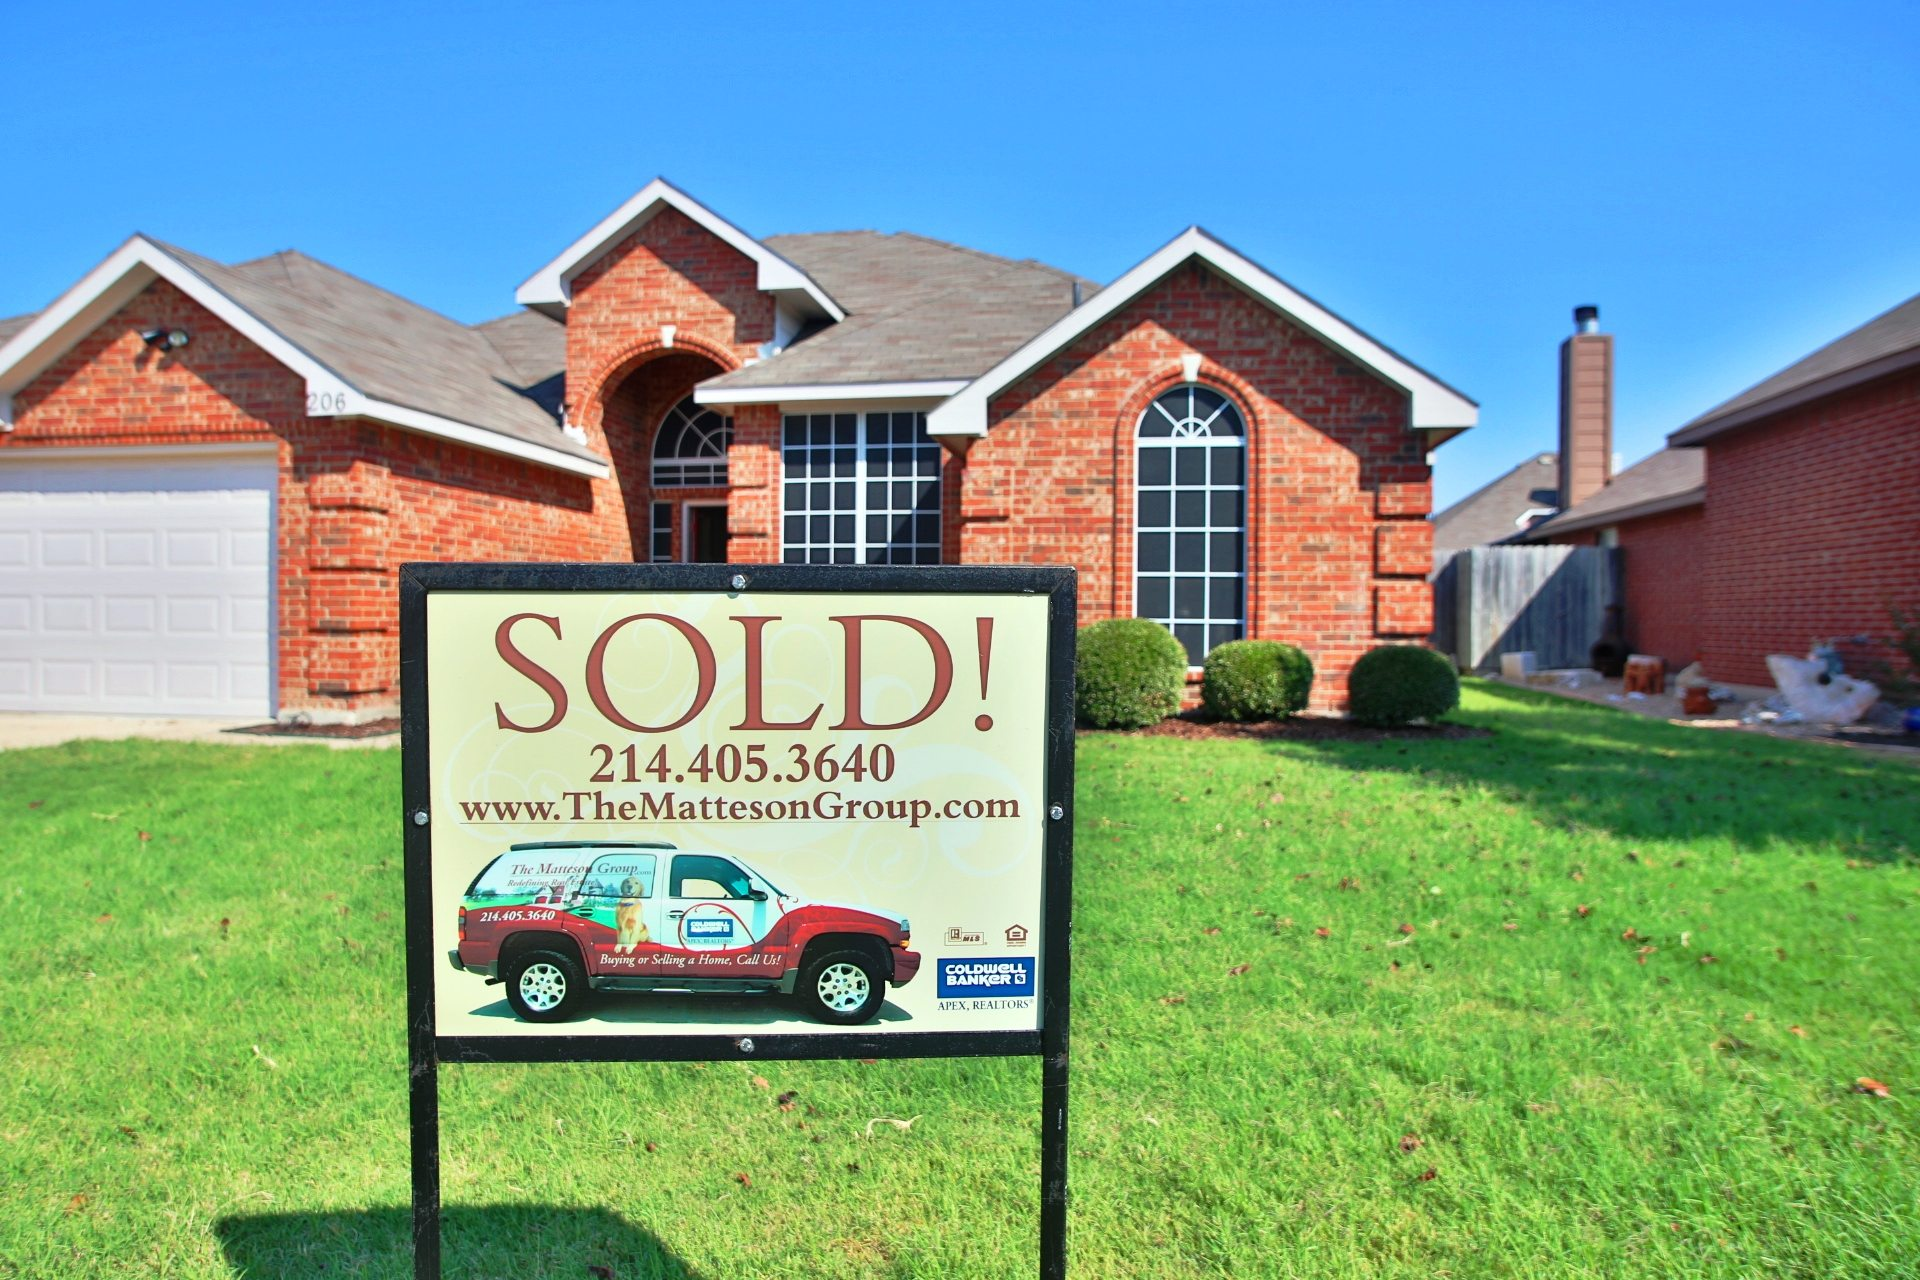 206 Sage Street - Shaw, Bryan and Stephanie - SOLD!